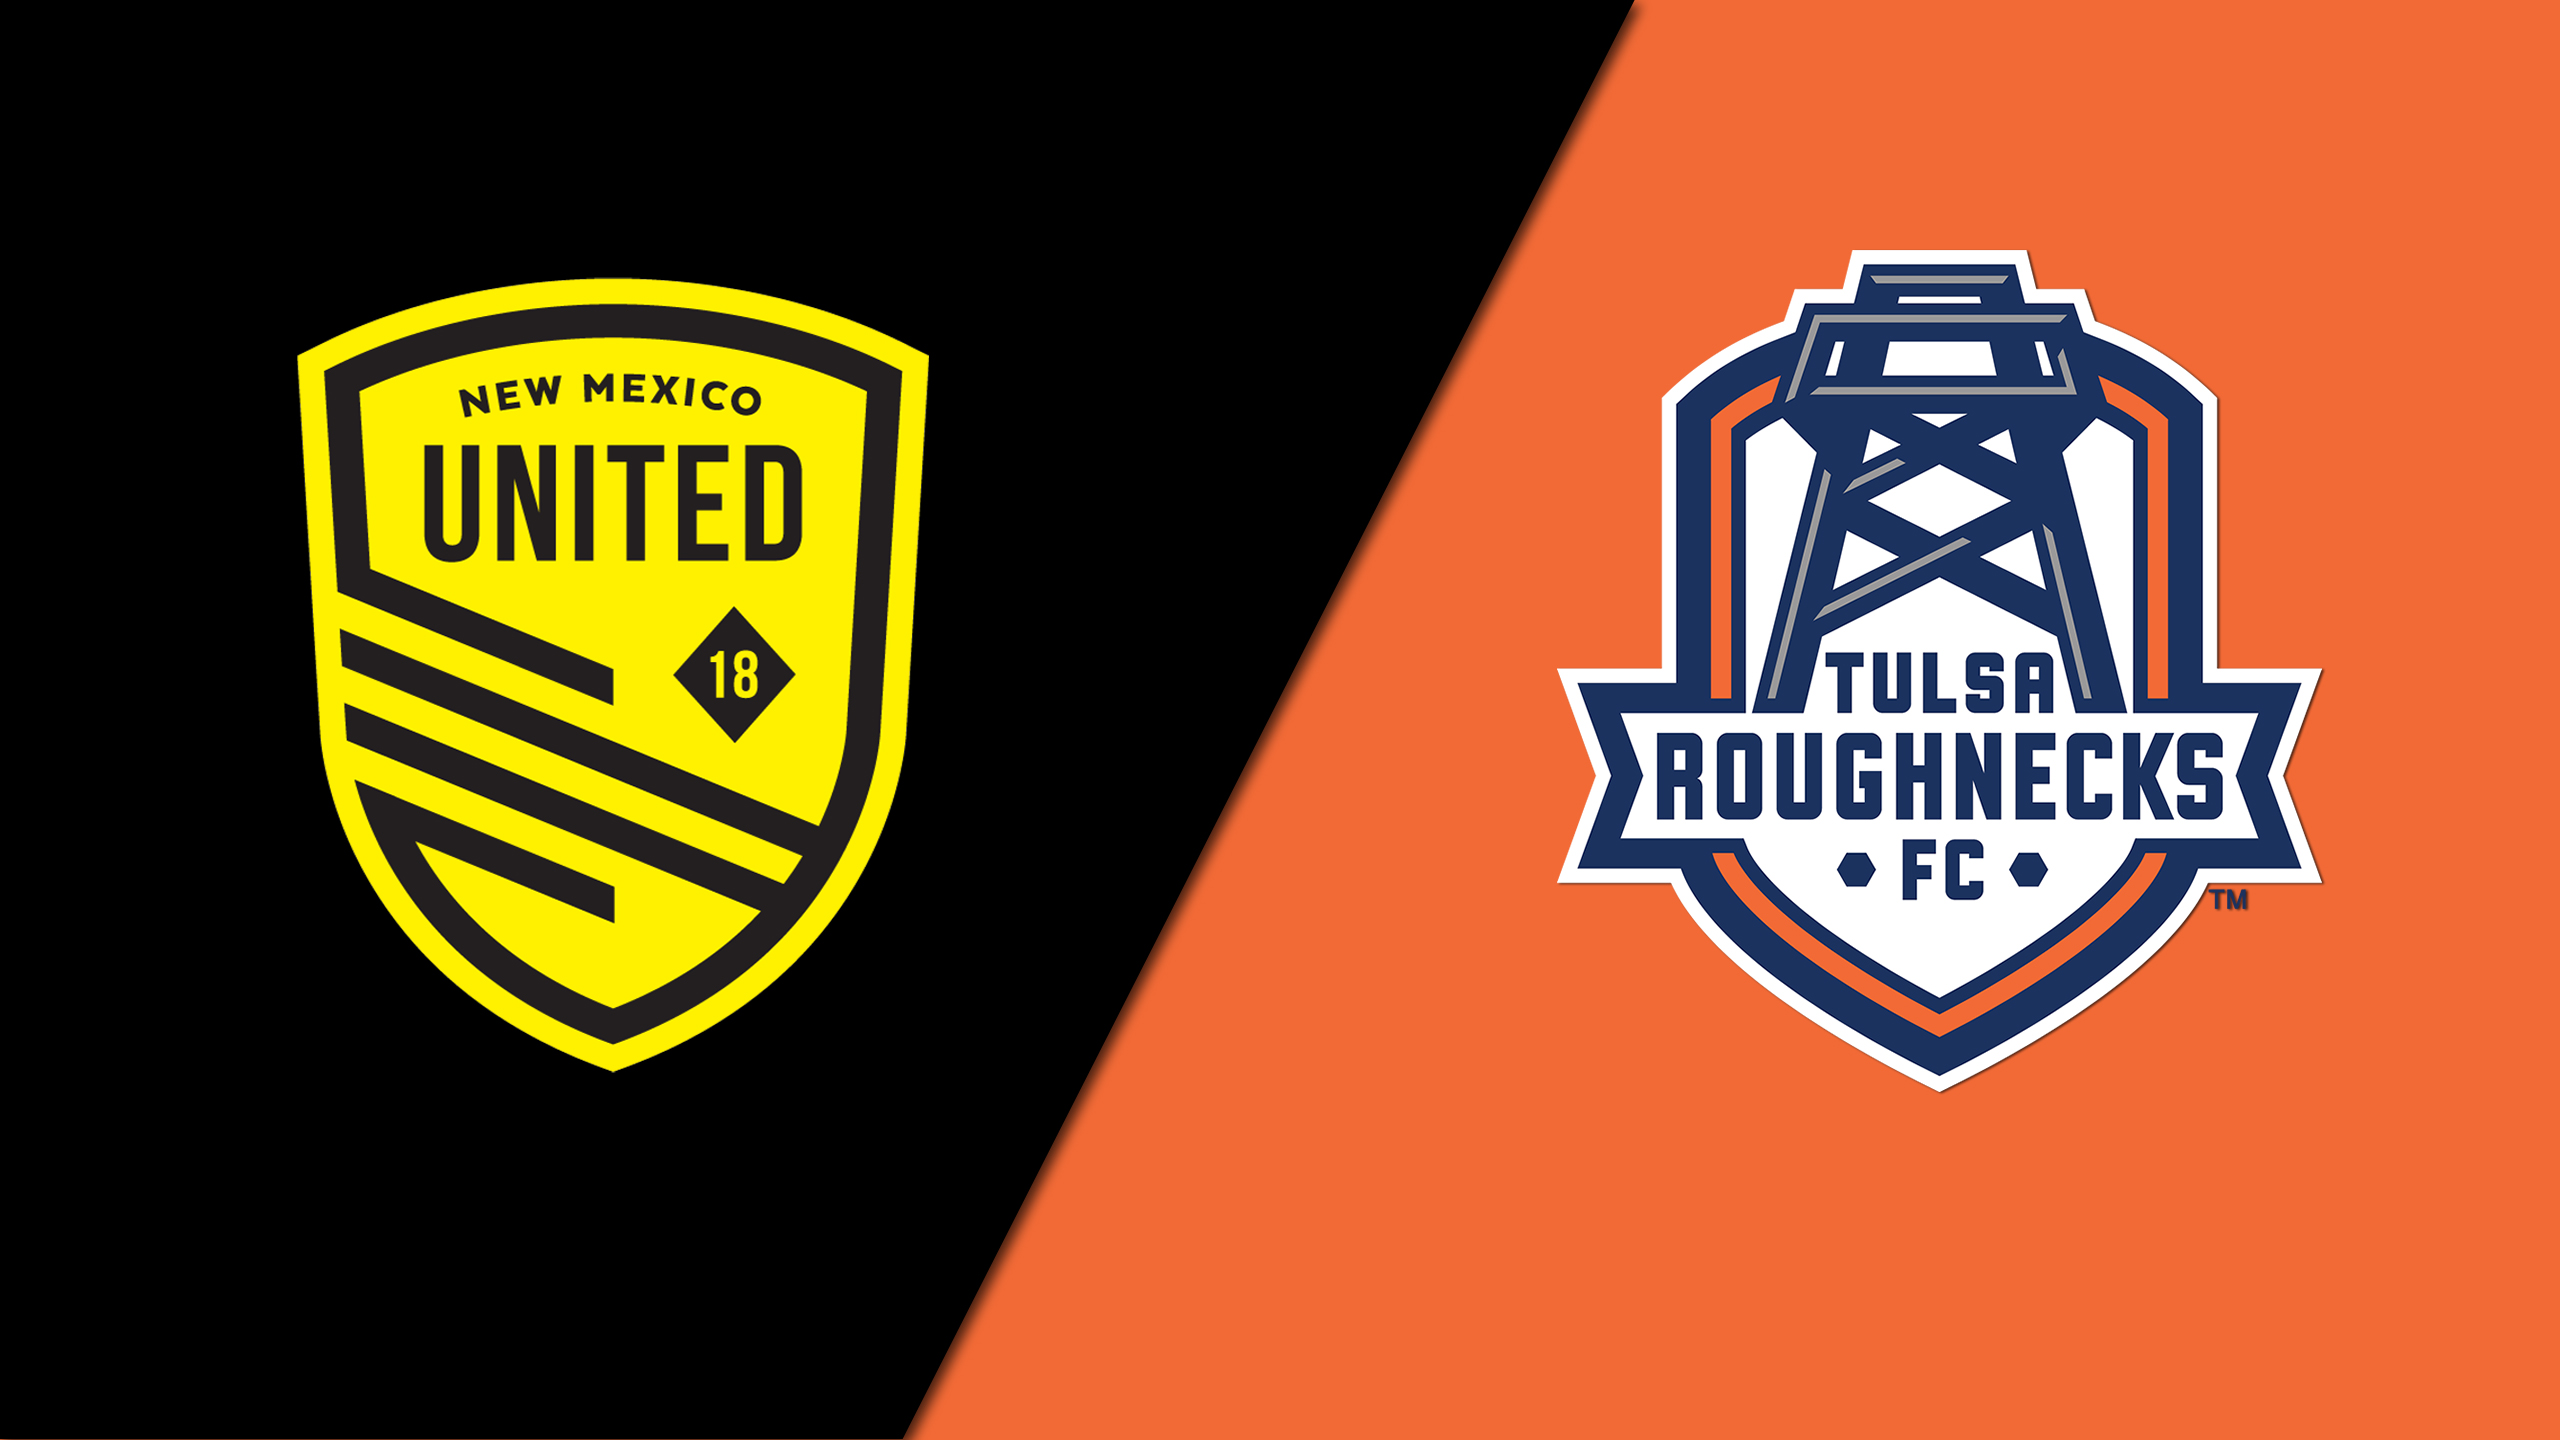 New Mexico United vs. Tulsa Roughnecks FC